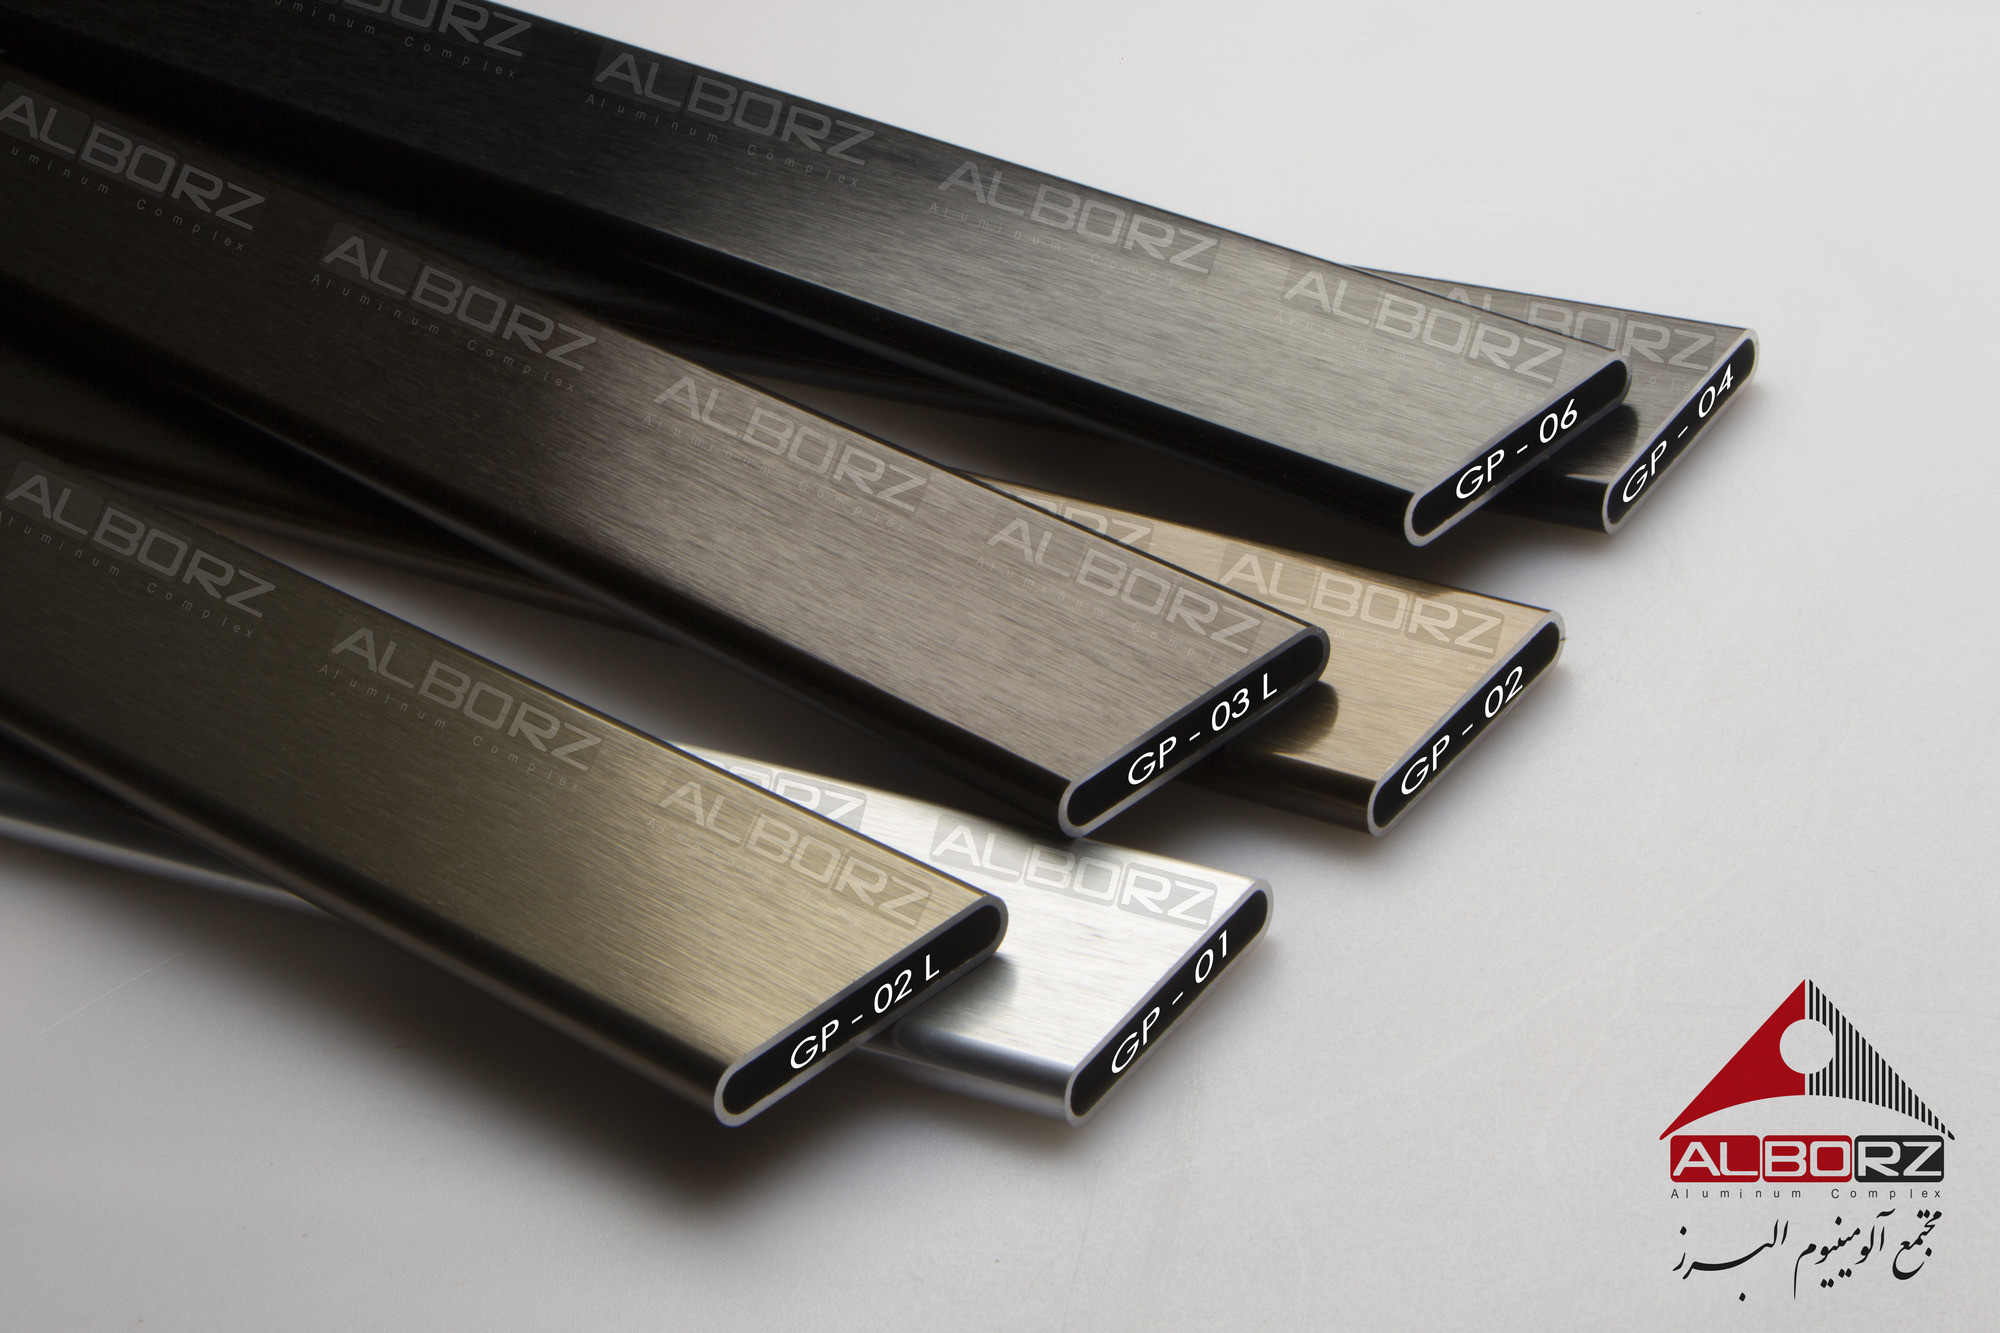 Aluminum profiles with wear-resistant and corrosion-resistant nanostructured anodizing coatings